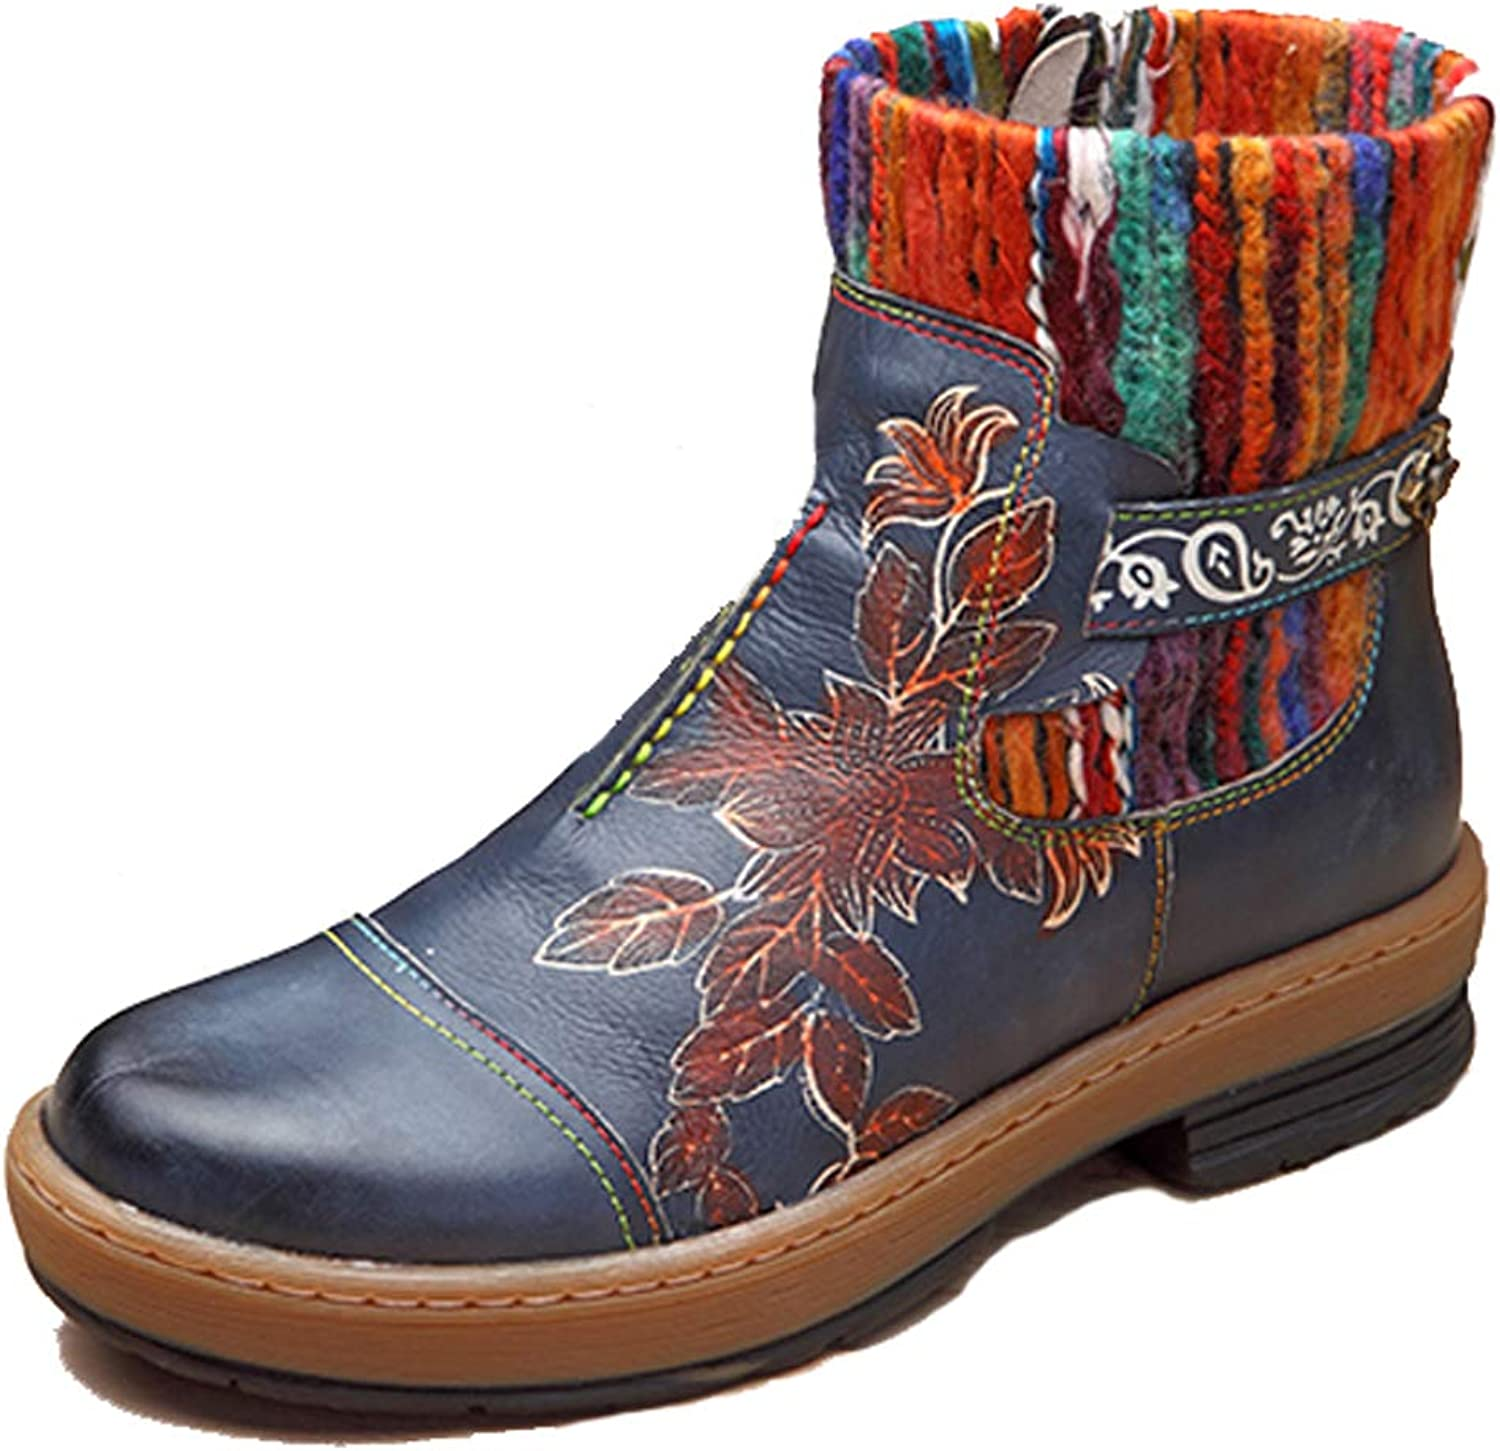 Honeystore Women's shoes Round Toe Flat Boots Zipper Retro Carving Flower Pattern Leather Booties